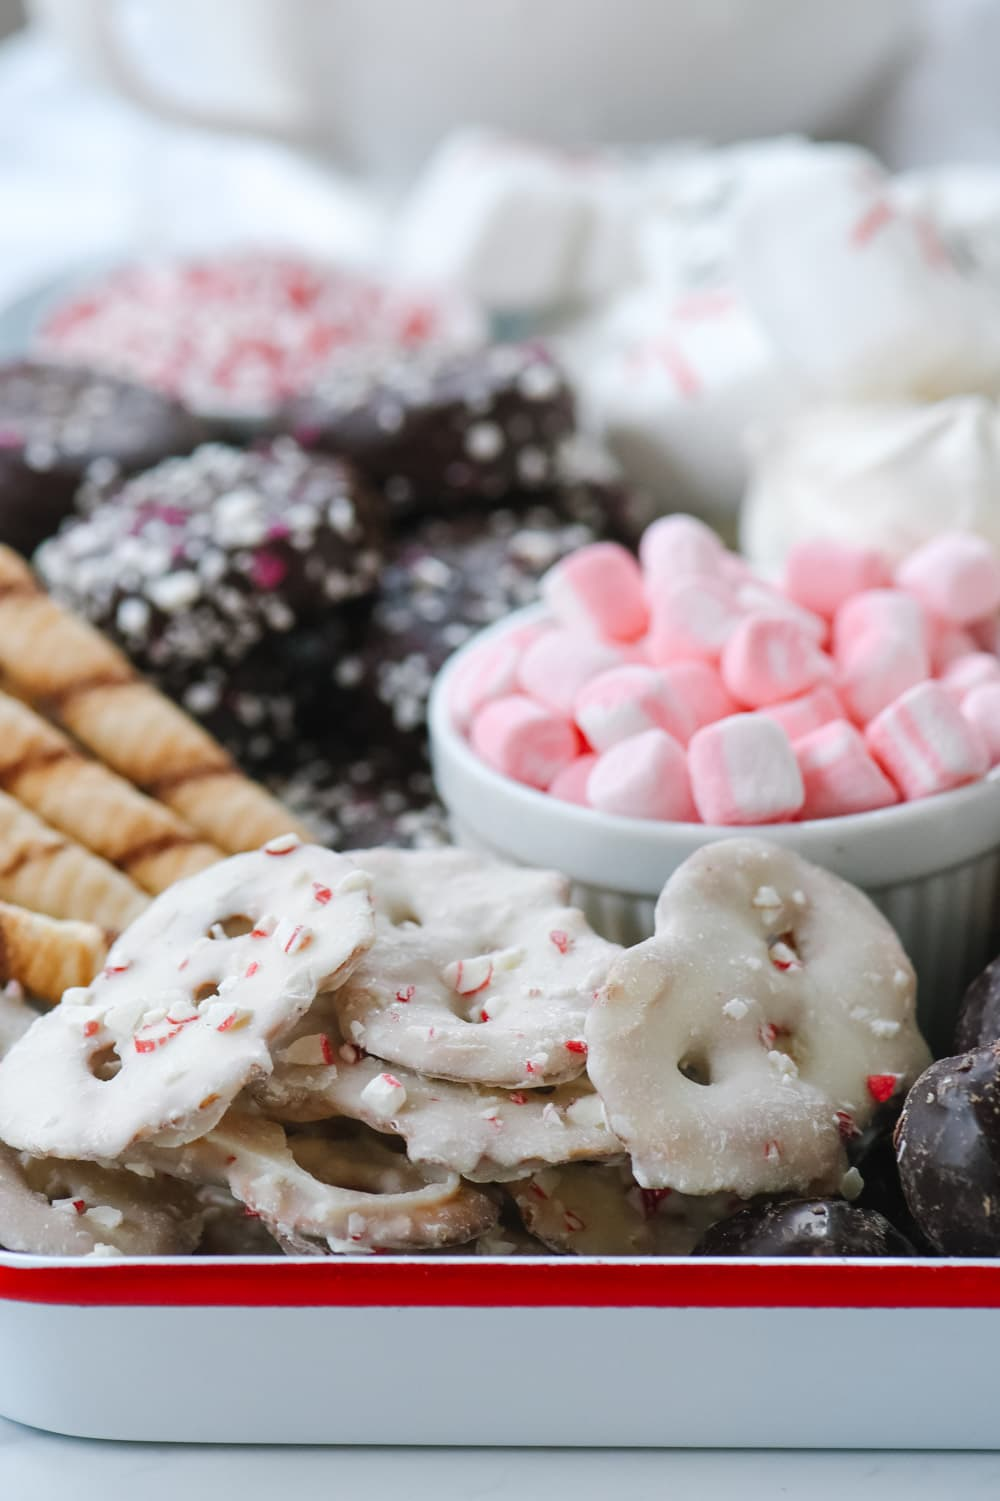 Hot Cocoa Snack Board ingredients